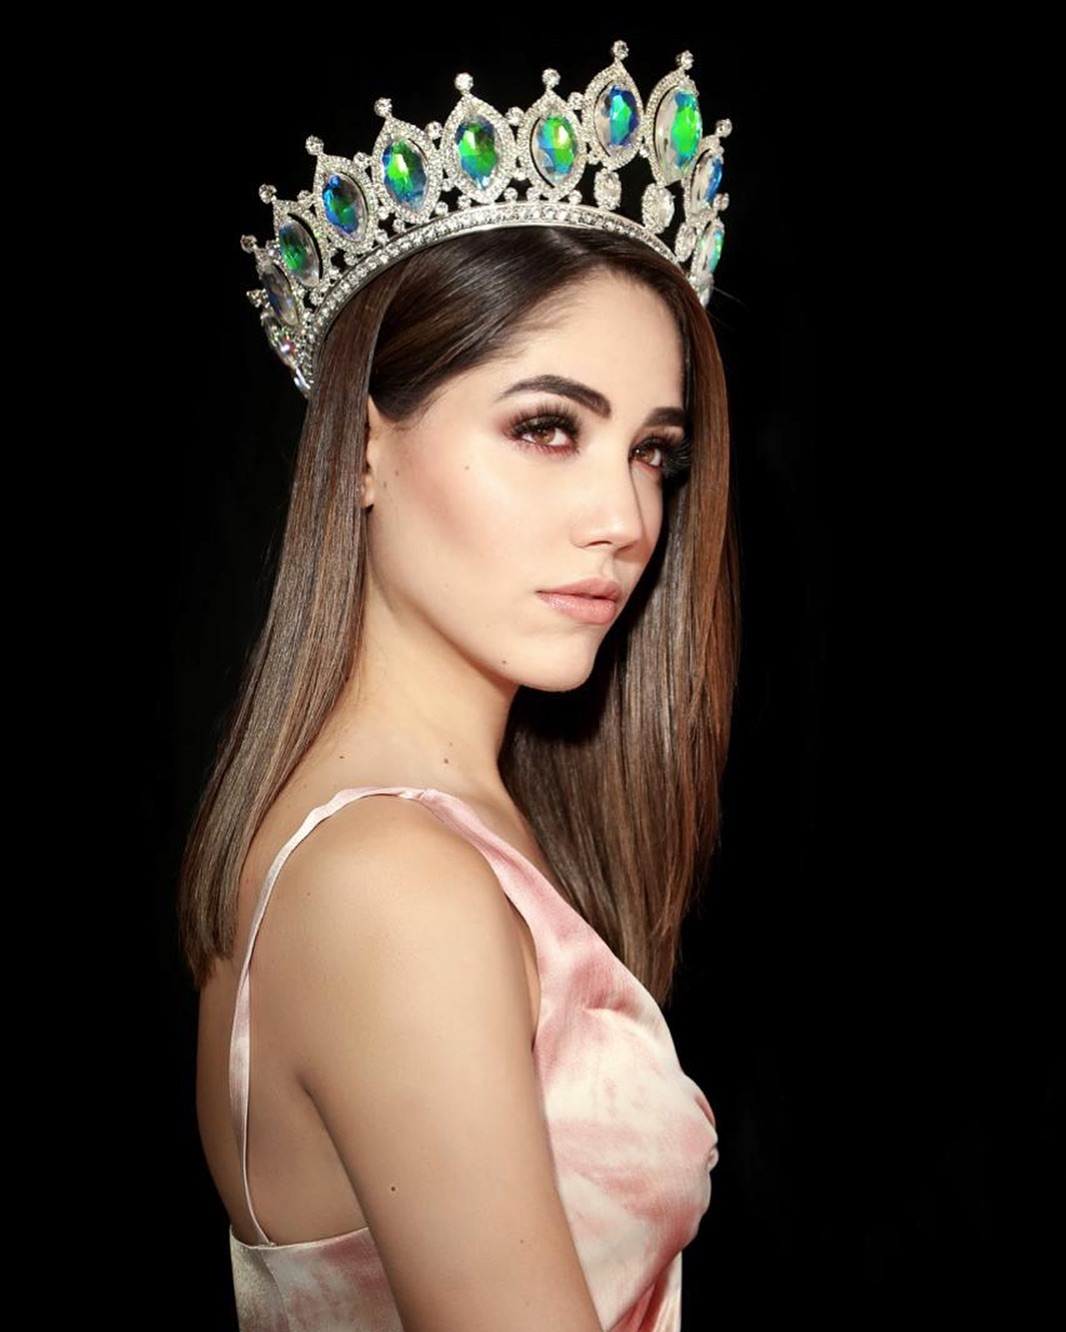 mich hewitt, miss tourism world 2019. - Página 2 54510812